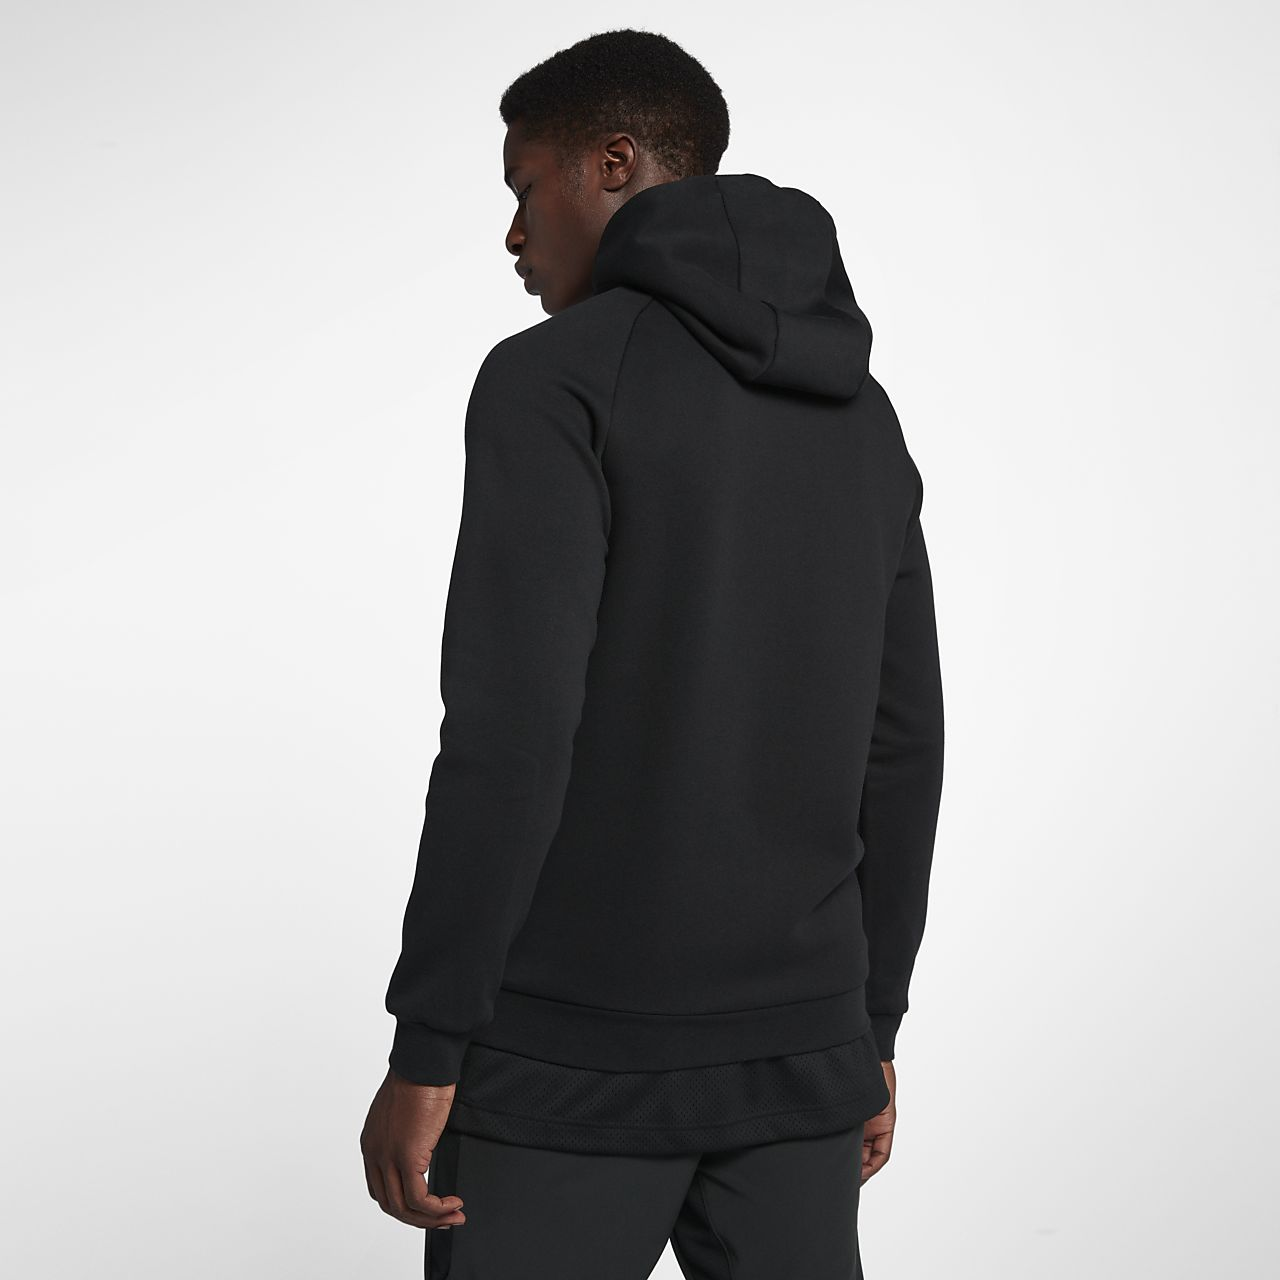 Jordan Jumpman Men s Fleece Full-Zip Hoodie. Nike.com DK 1e332d26249b6